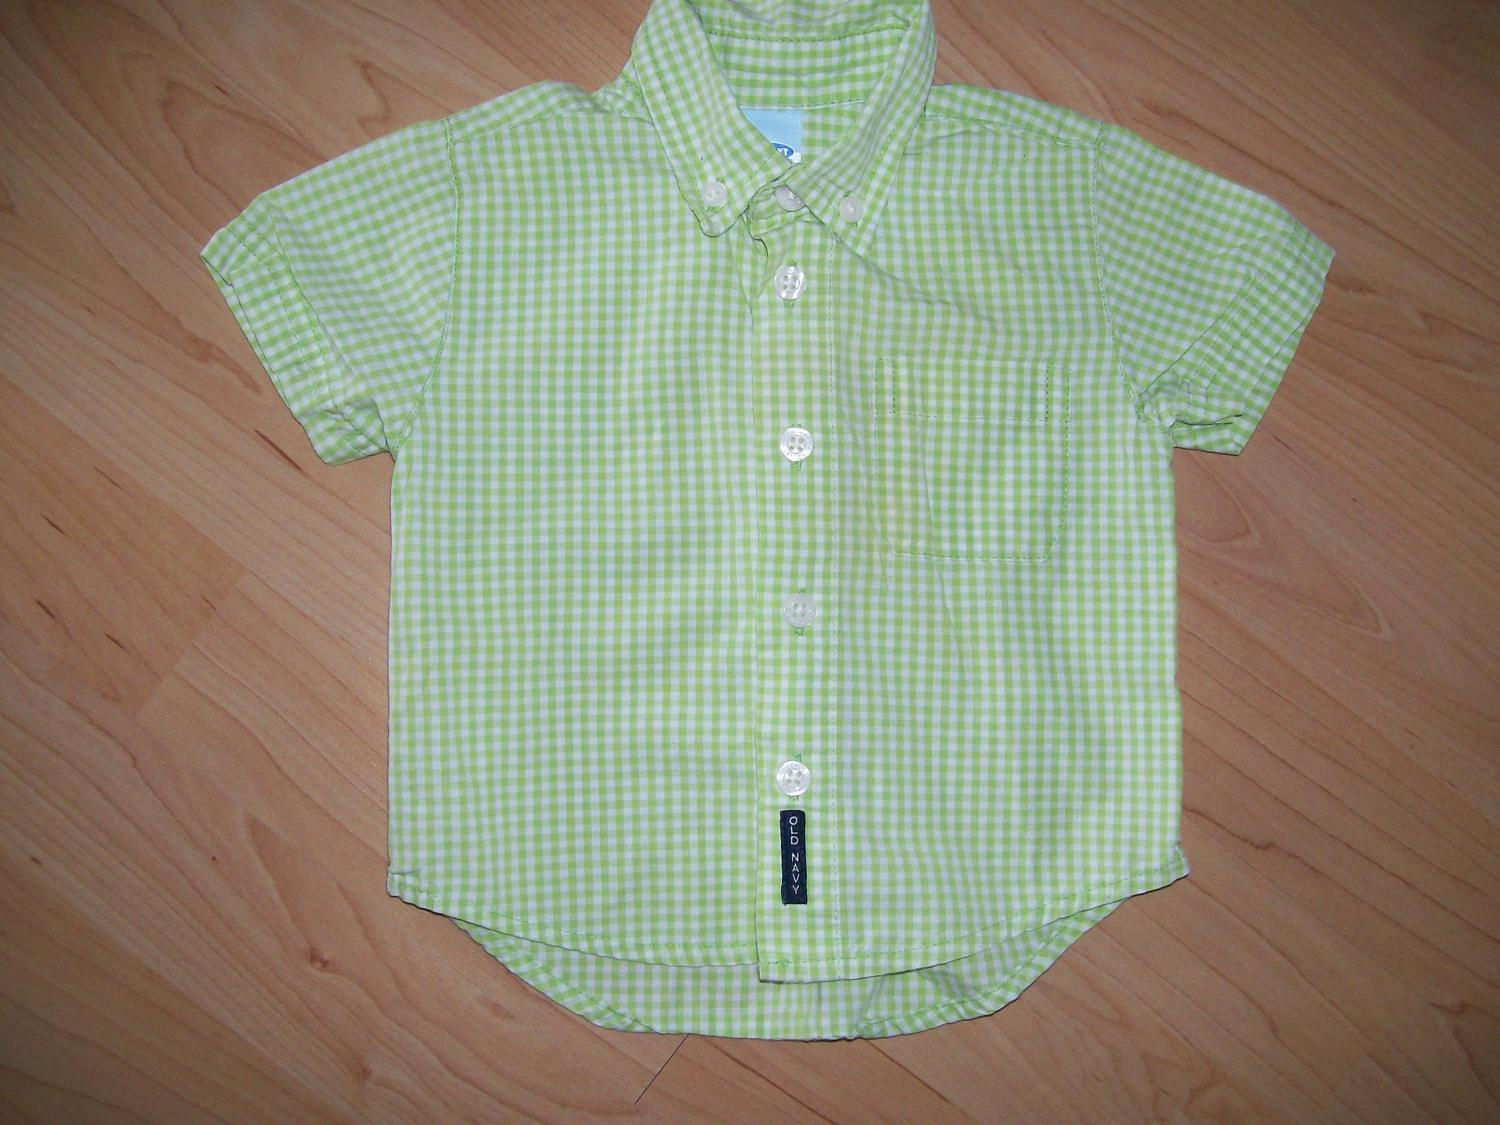 Best Old Navy Boys Shirt 3 6 Months For Sale In Hanover Ontario For